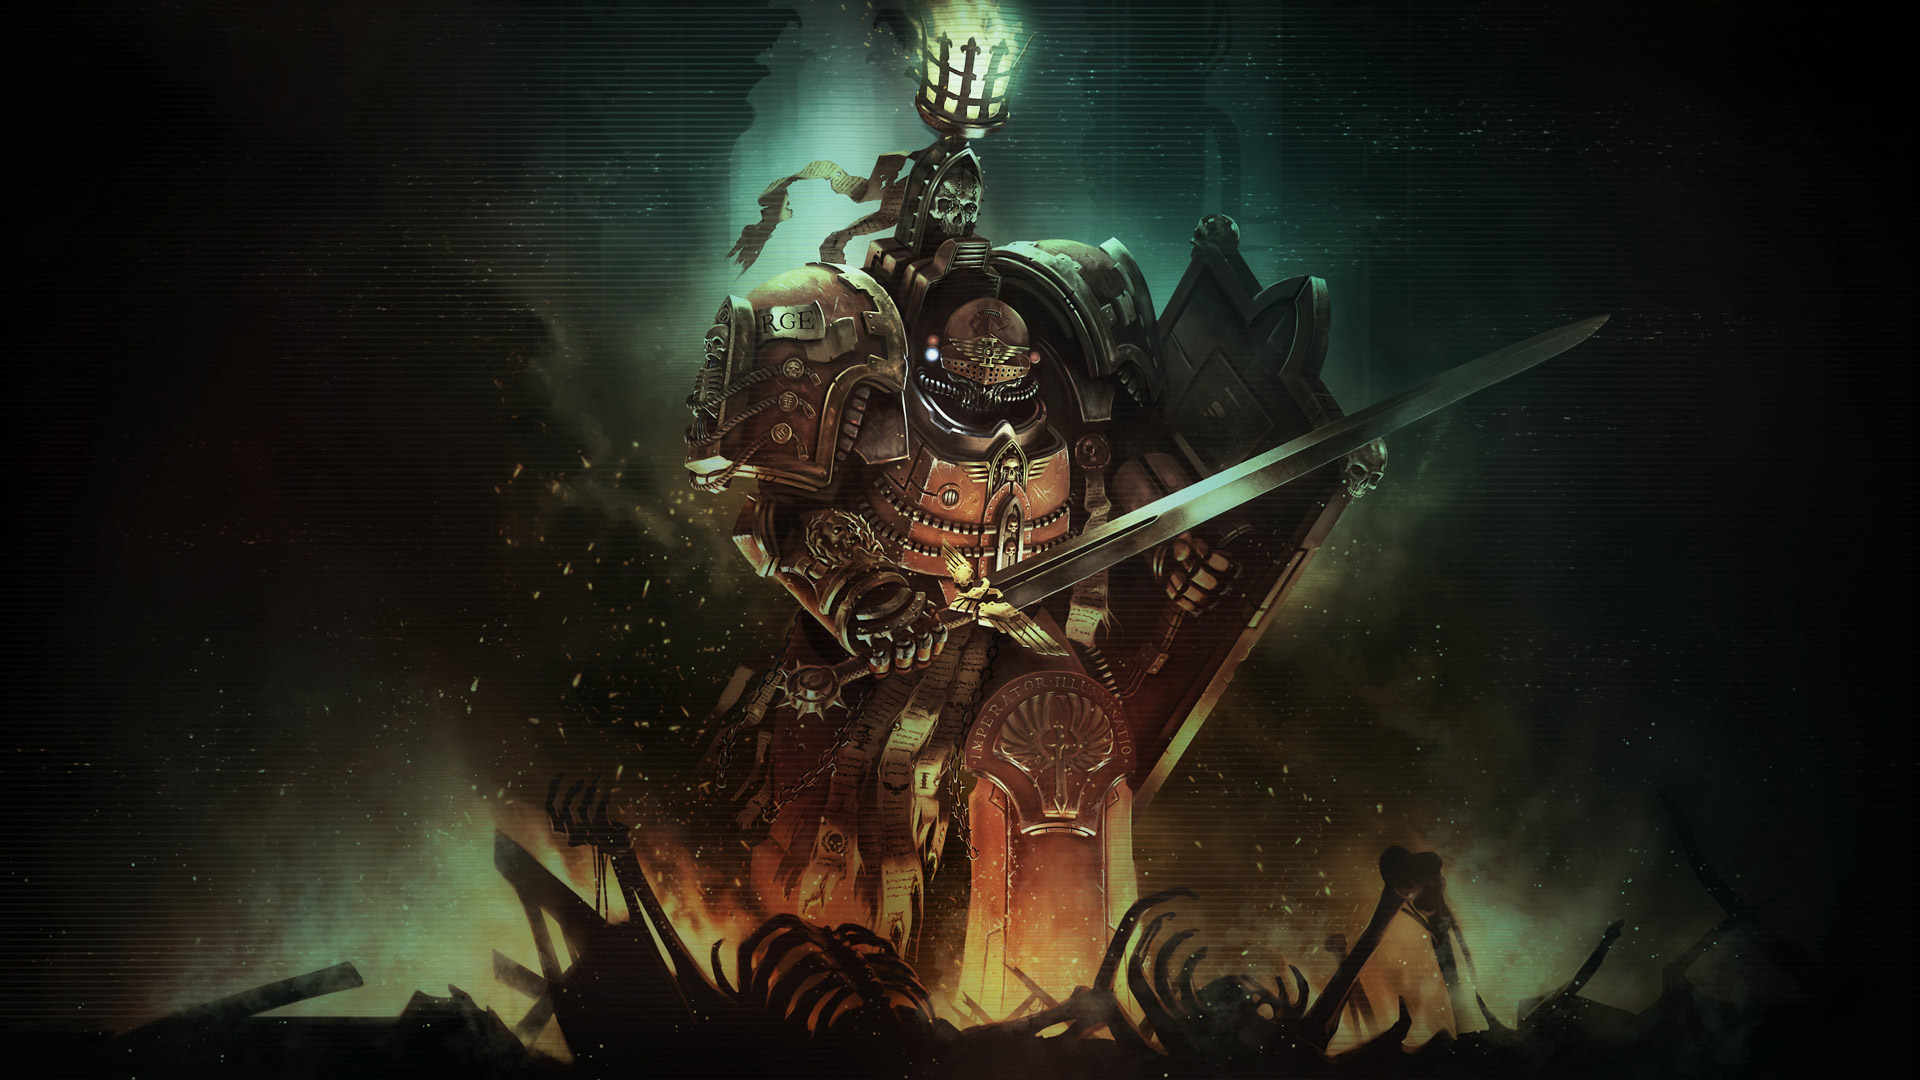 Free Warhammer 40,000: Inquisitor - Martyr Wallpaper in 1920x1080